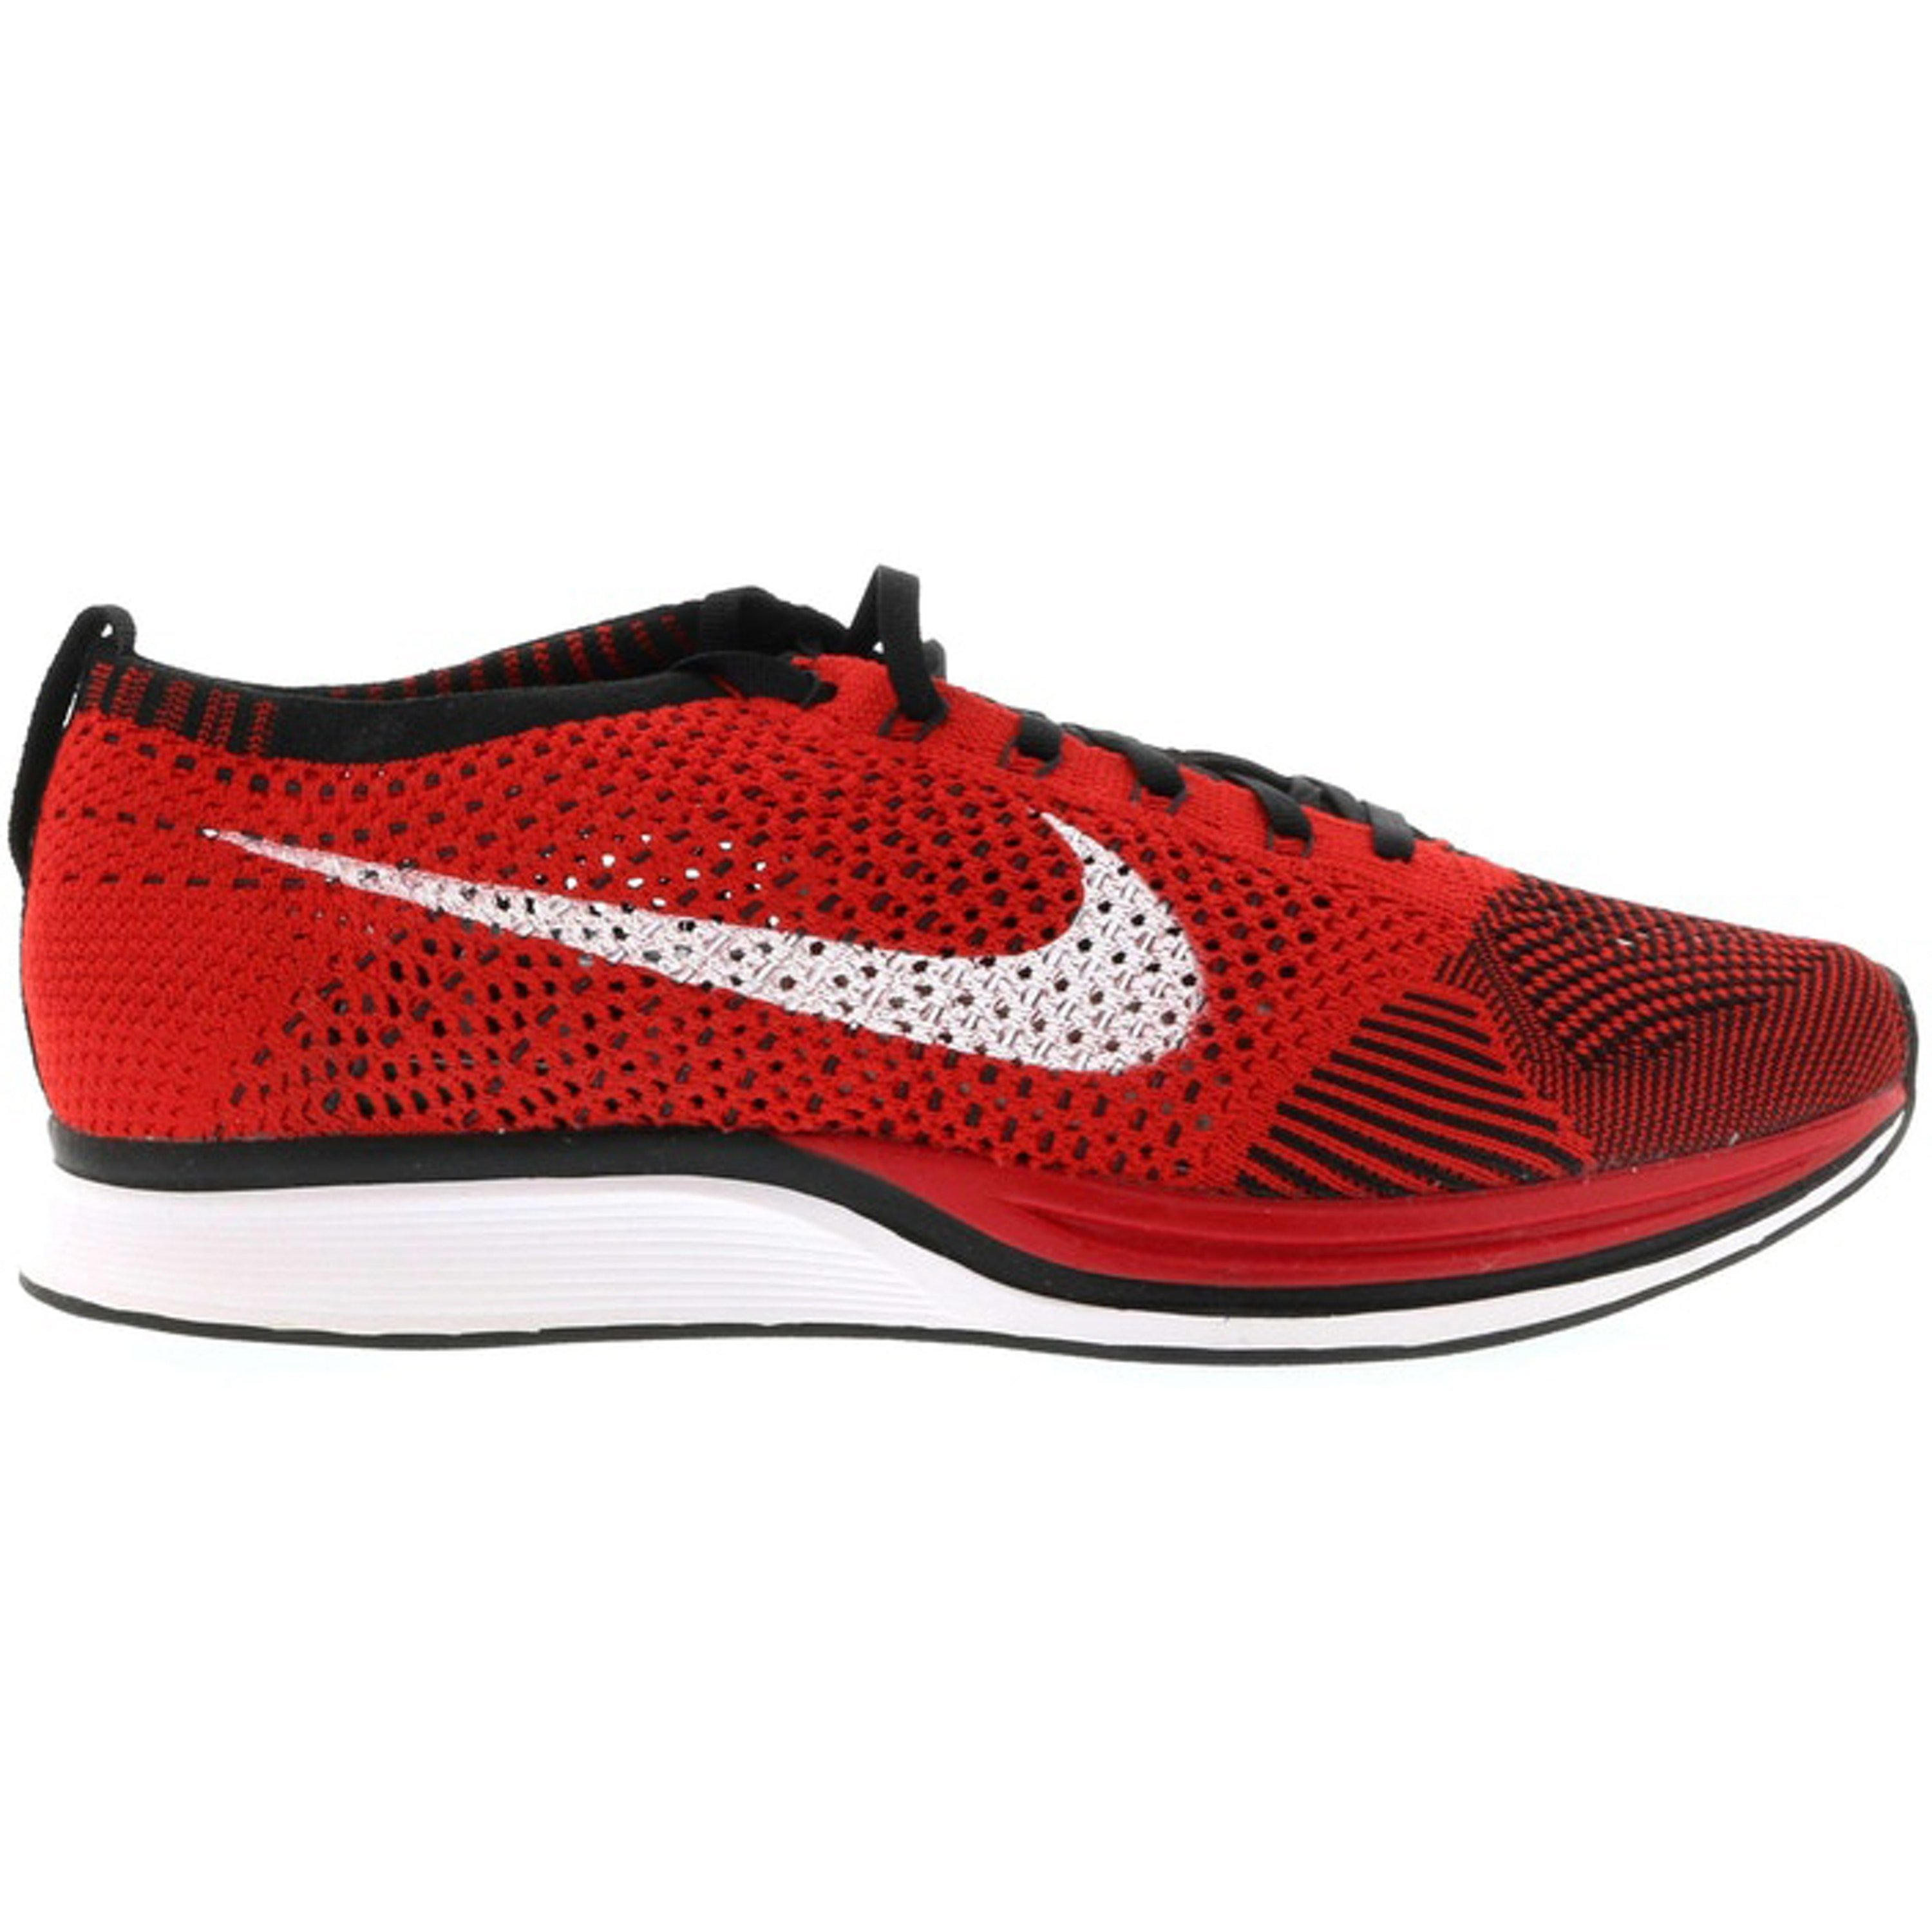 Nike Flyknit Racer University Red (526628-610)